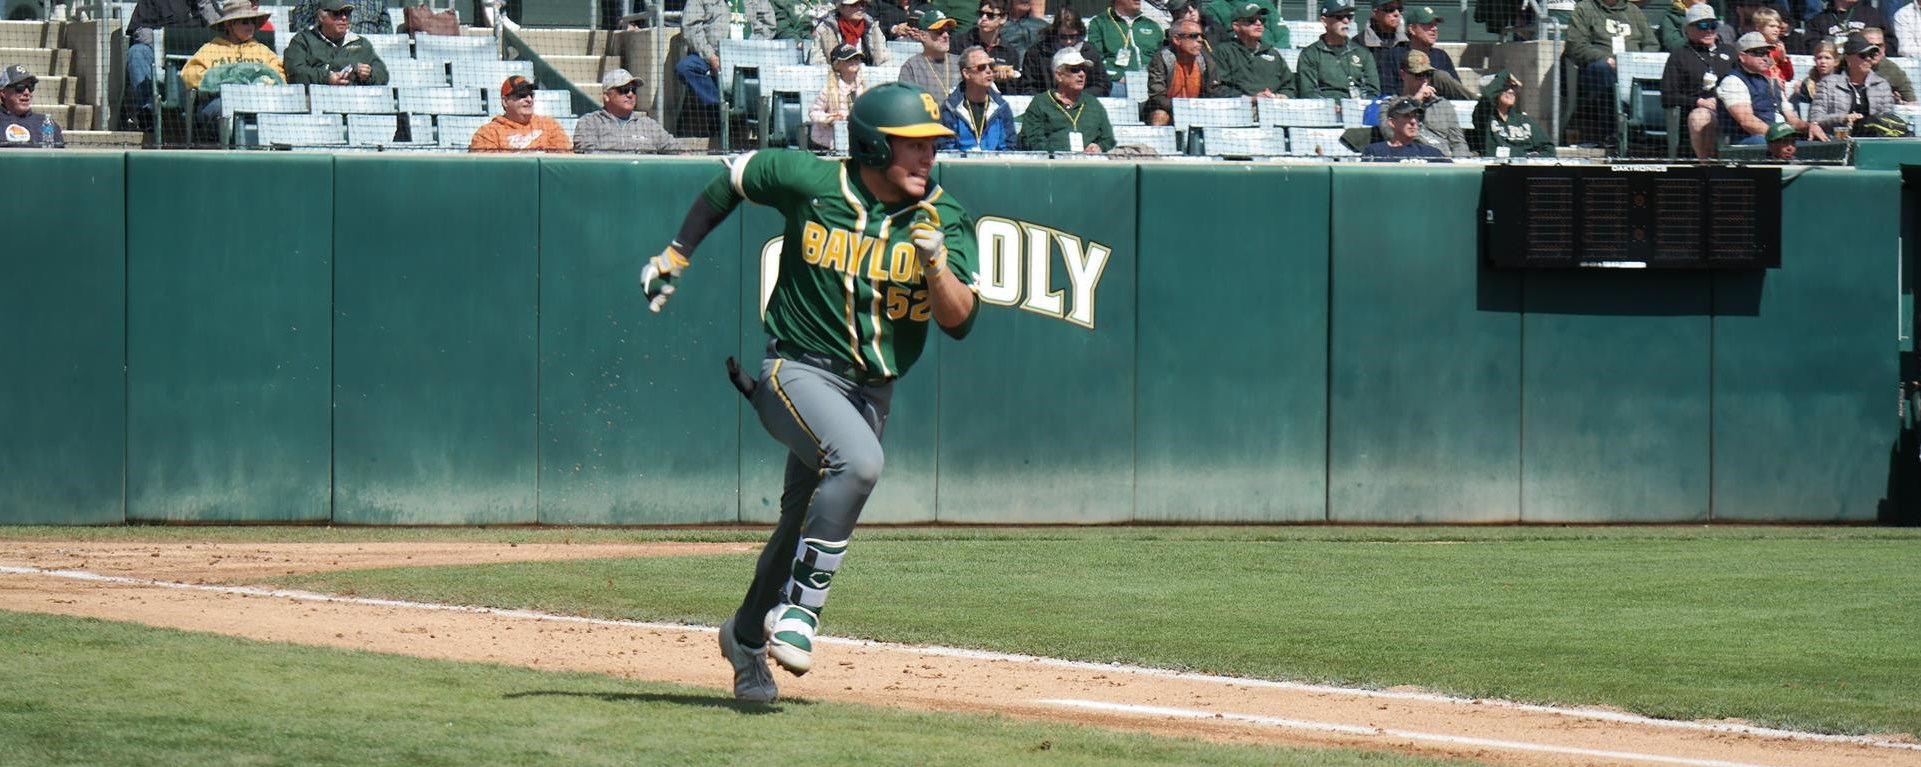 Baseball Welcomes Dbu To Waco For Midweek Contest Baylor University Athletics